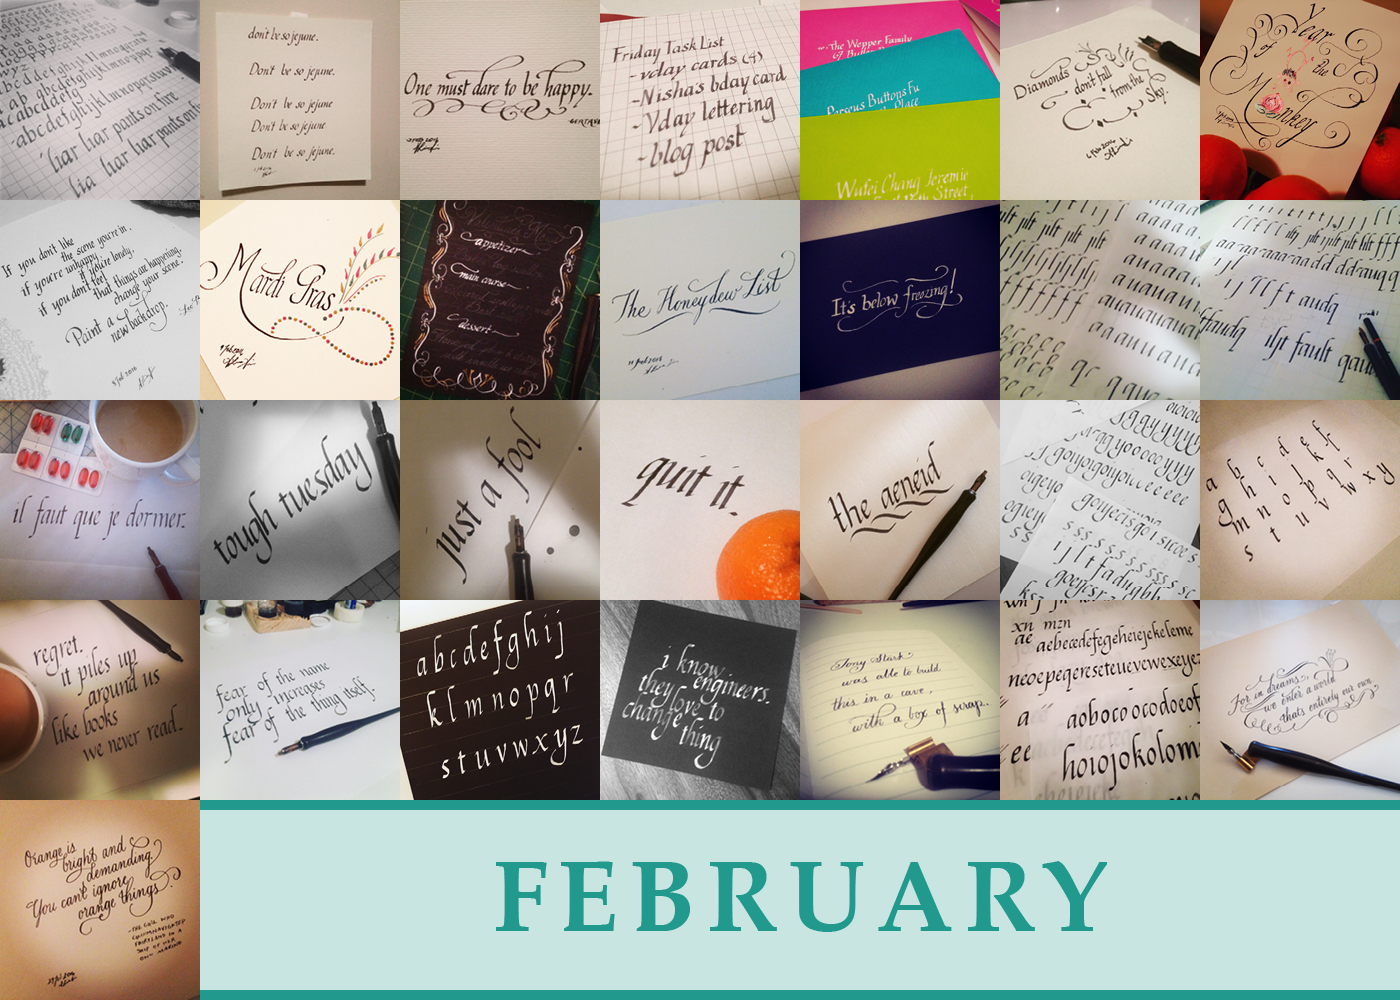 365 Days of Calligraphy: February